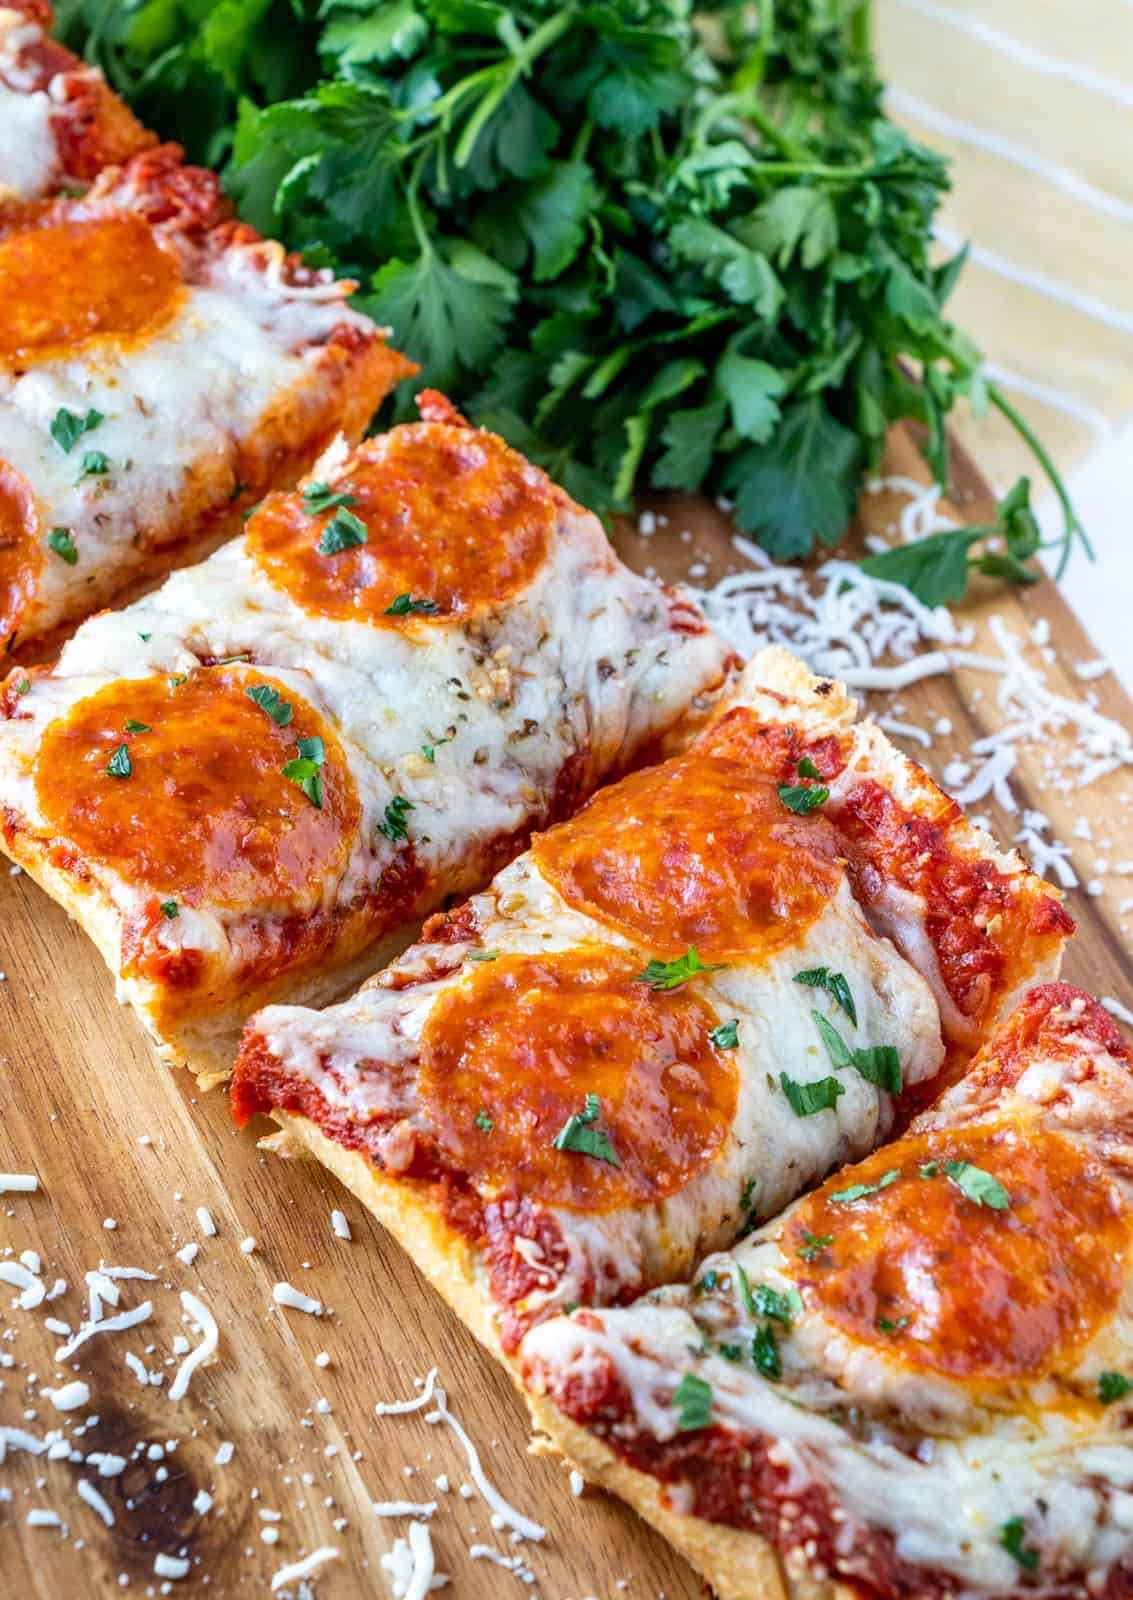 Sliced French Bread Pizza on cutting board with shredded cheese and parsley